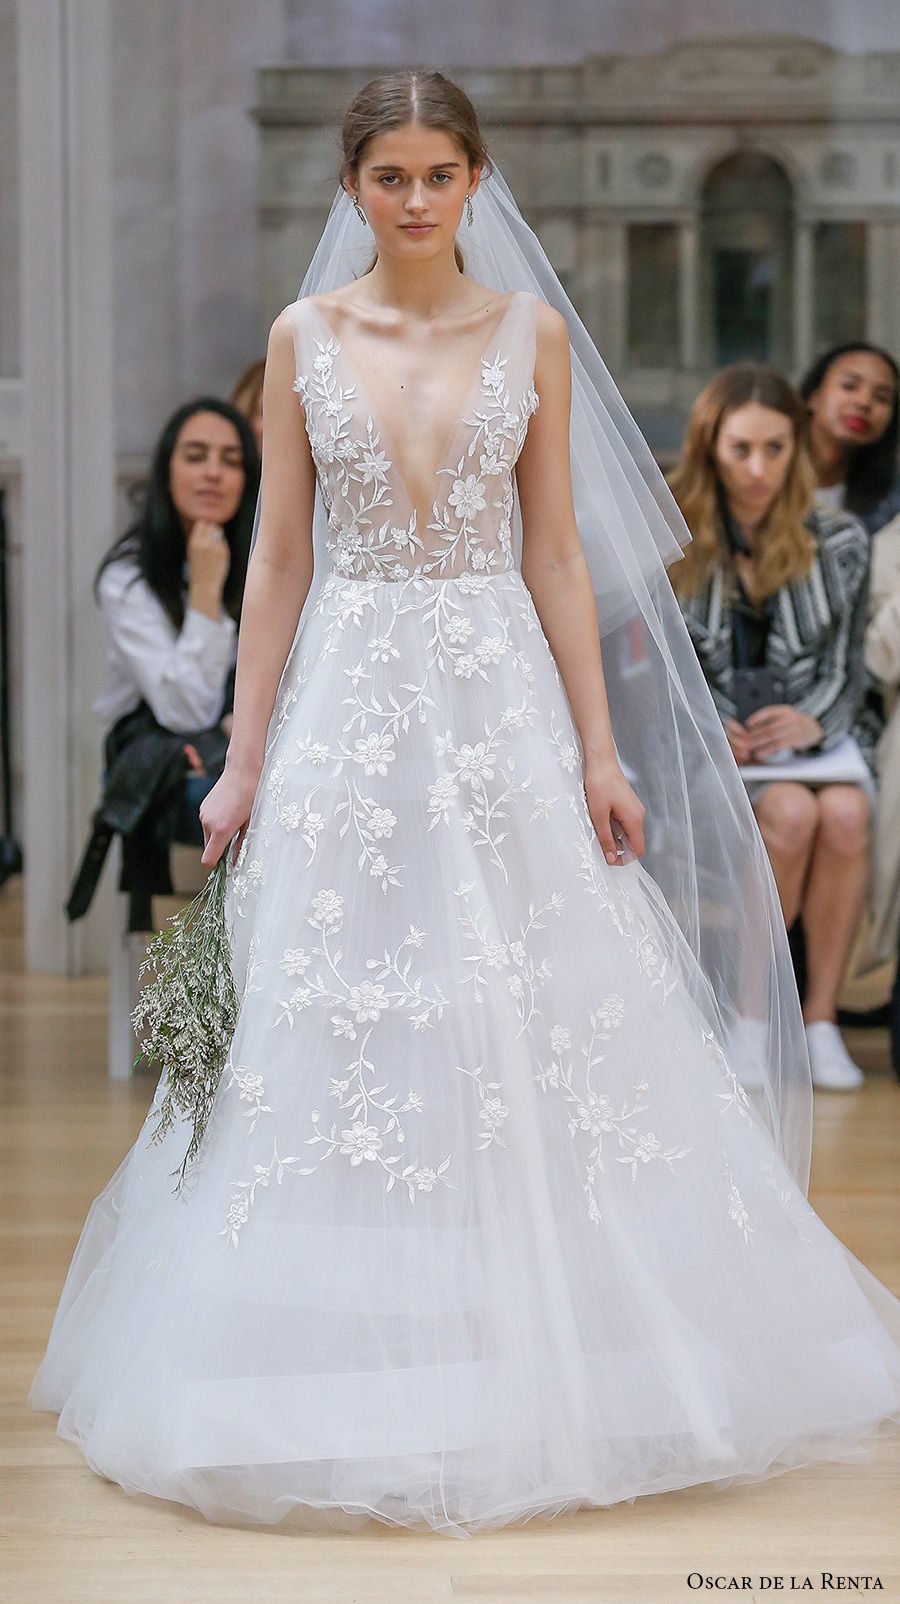 Oscar de la renta spring 2018 wedding dresses new york bridal oscar de la renta spring 2018 bridal sleeveless deep v neck full embellishment beautiful romantic a junglespirit Choice Image